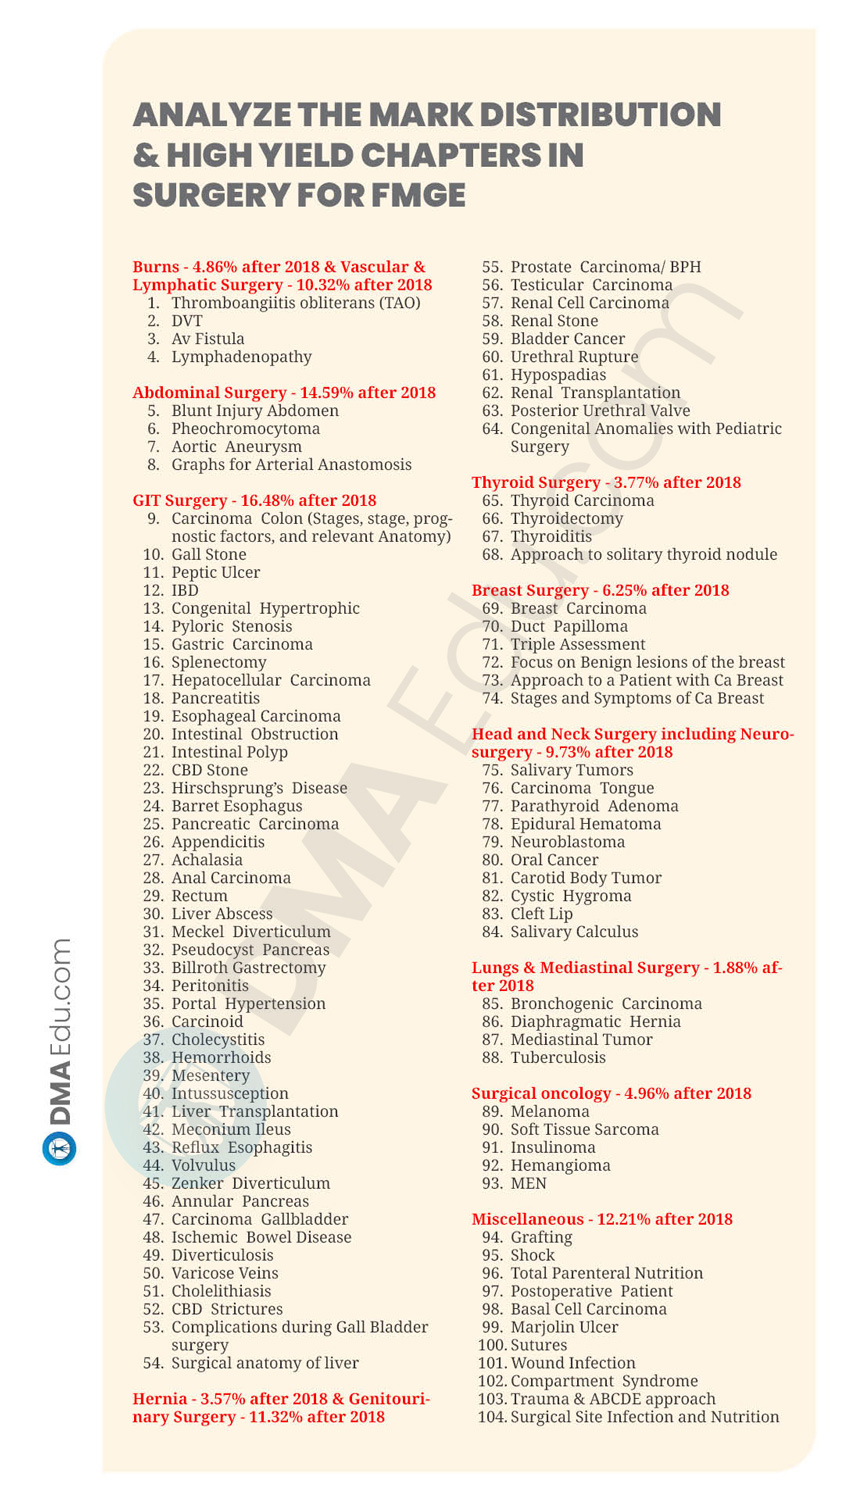 19 SUBJECTS HIGH YILD CHAPTER5 How to Prepare Surgery for FMGE 2021? FMGE, FMGE preparation, FMGE Study Plan, FMGE Tips